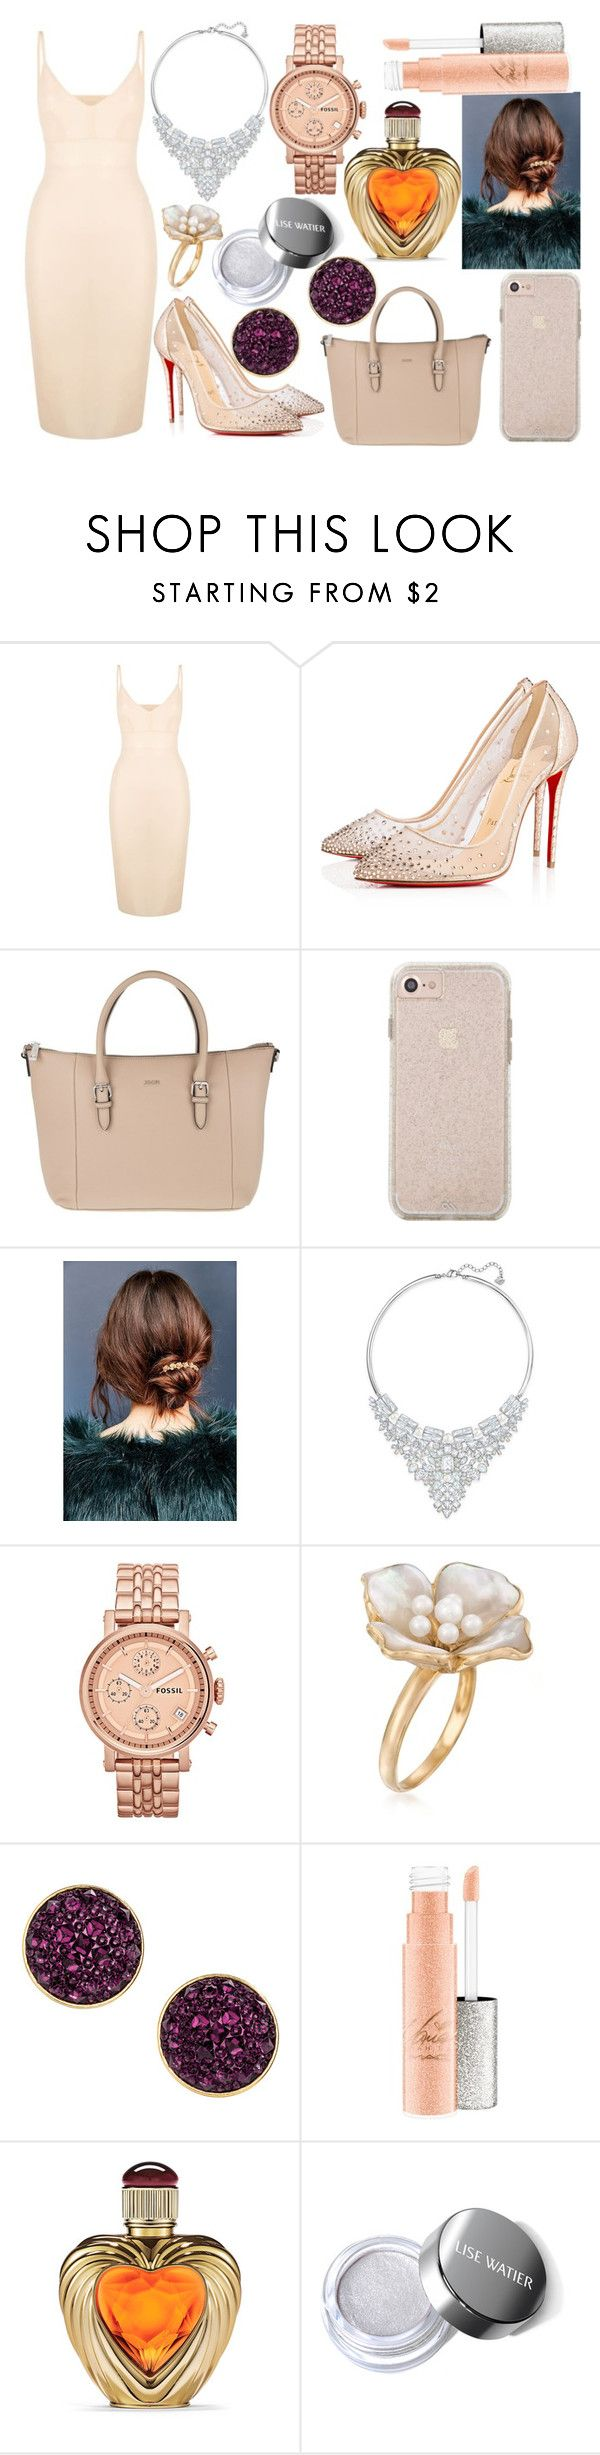 """Sin título #4060"" by onedirection-h1n1l2z1 on Polyvore featuring Roland Mouret, Christian Louboutin, Joop!, Urban Outfitters, Swarovski, FOSSIL, Ross-Simons, H&M, Victoria's Secret y men's fashion"